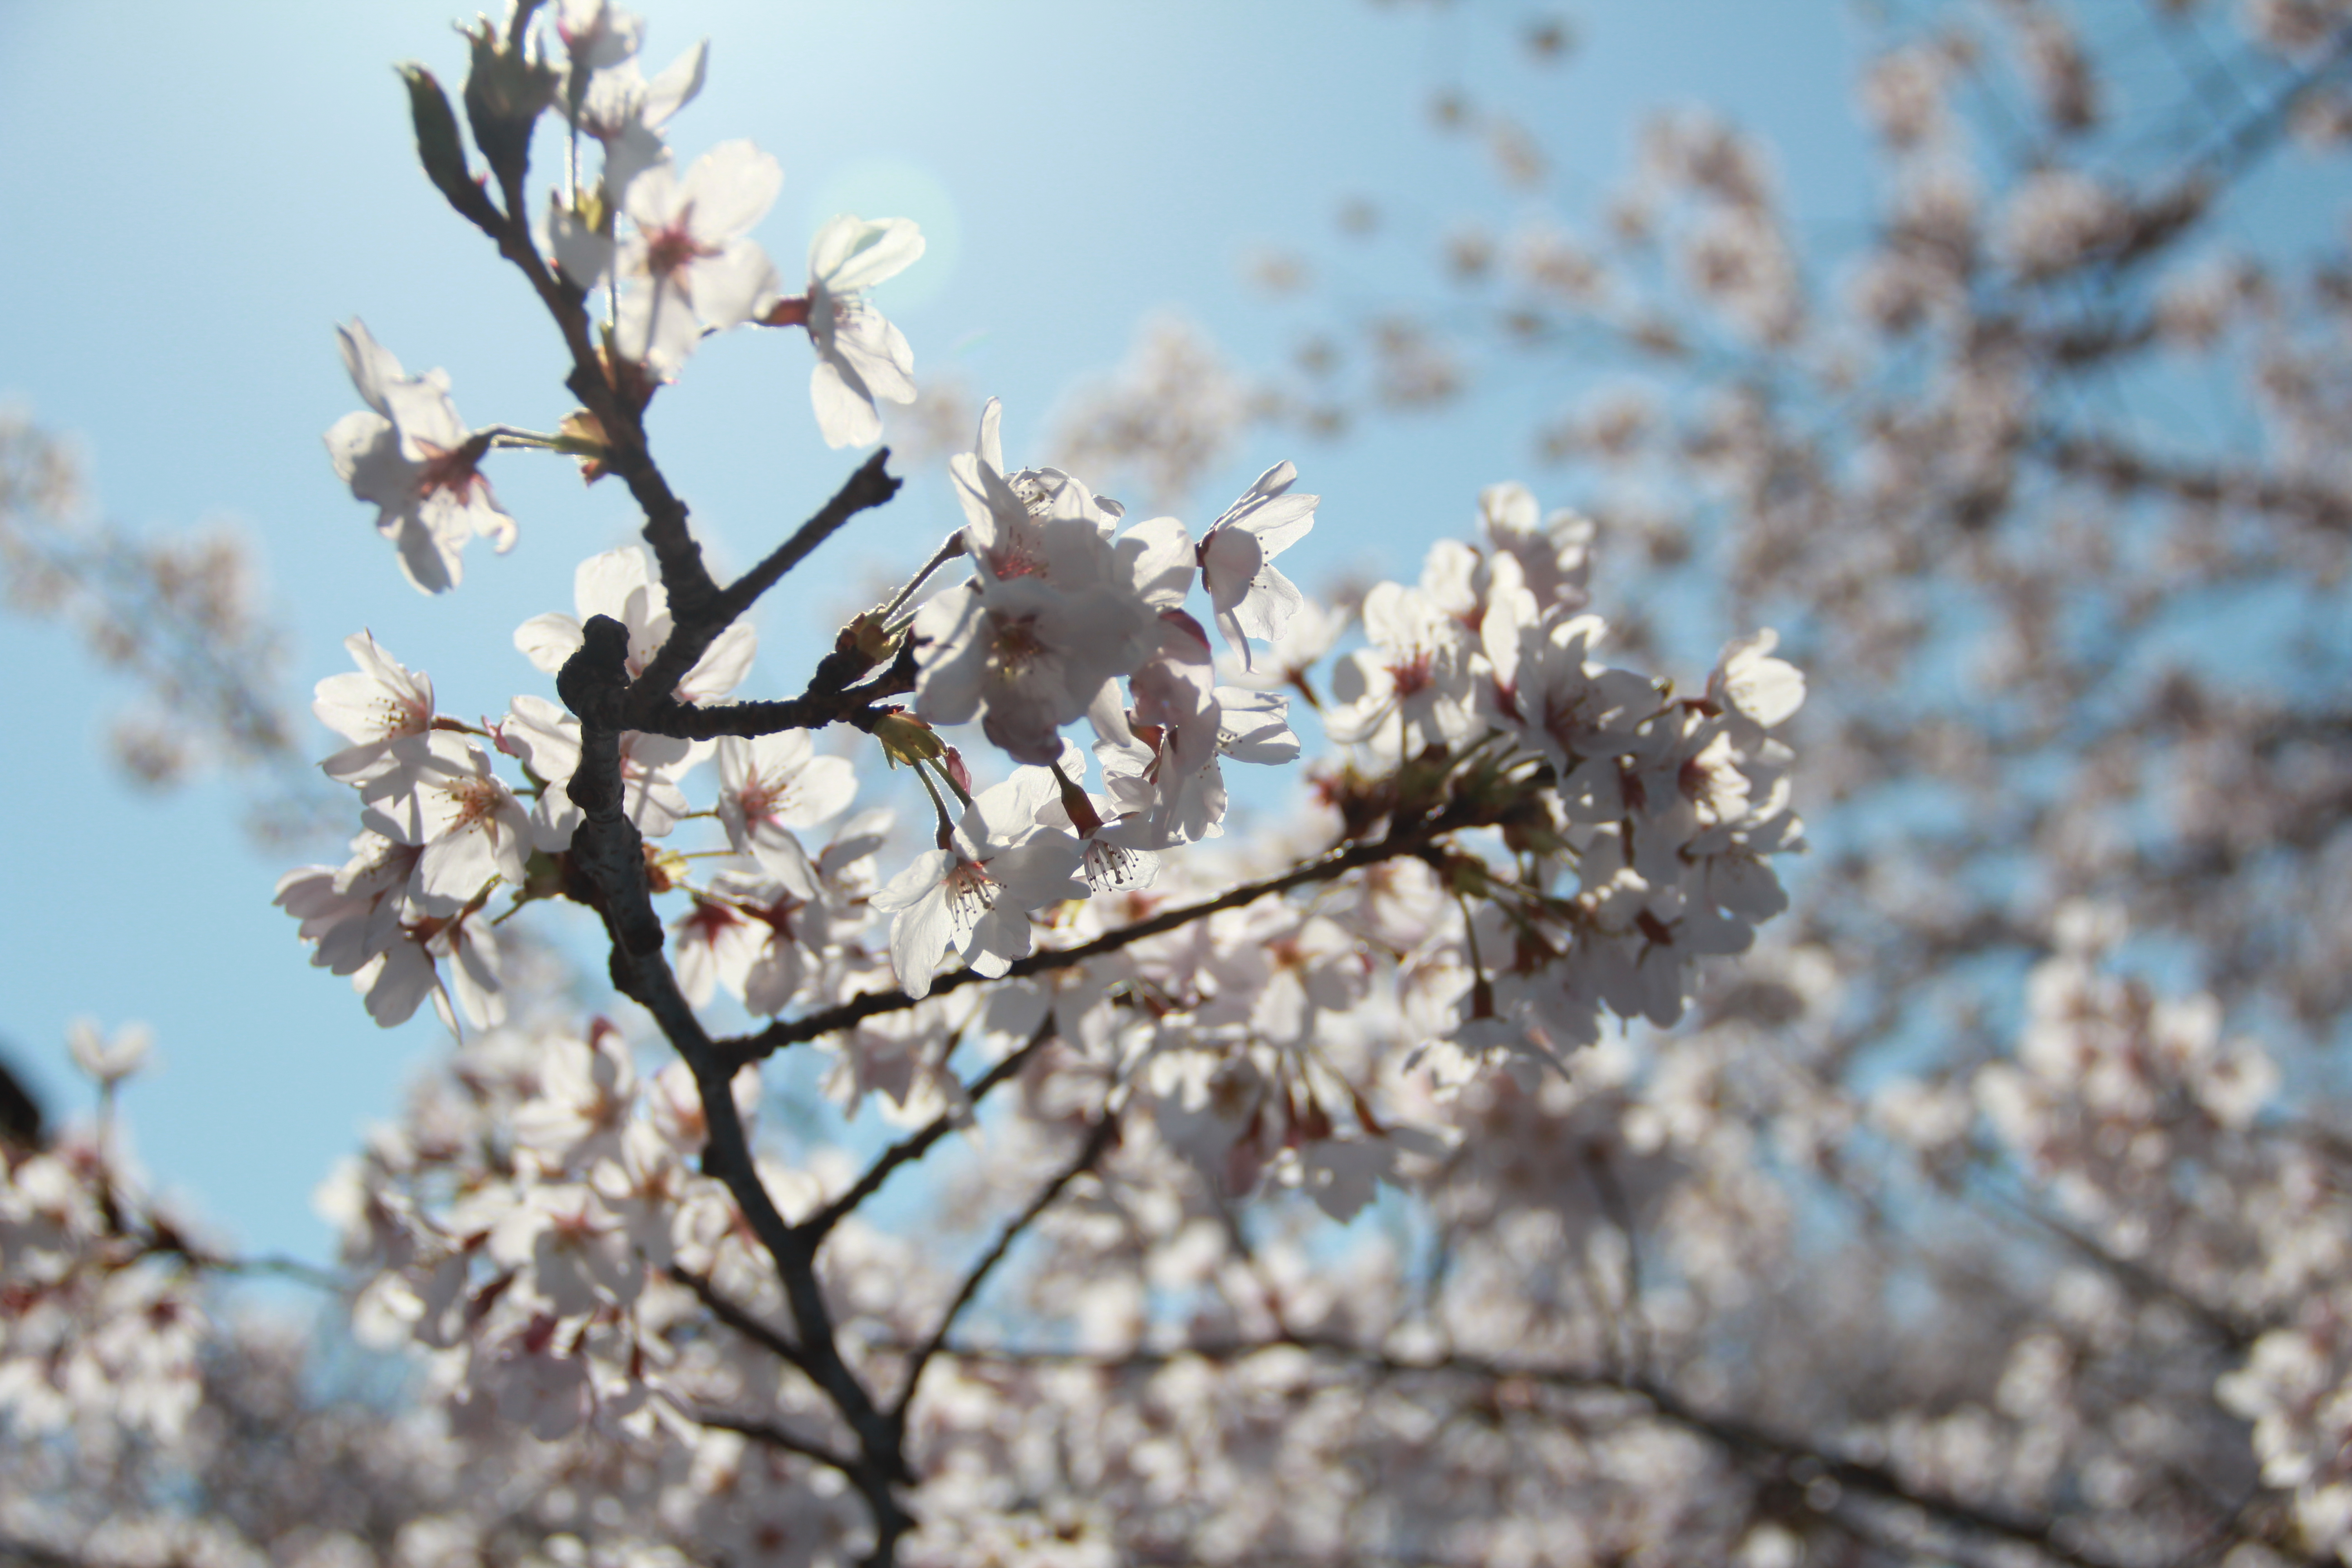 """mono no aware In japan there is a term mono no aware 物の哀れ, literally """"the pathos of things,"""" and also translated as """"an empathy toward things,"""" or """"a sensitivity to ephemera."""